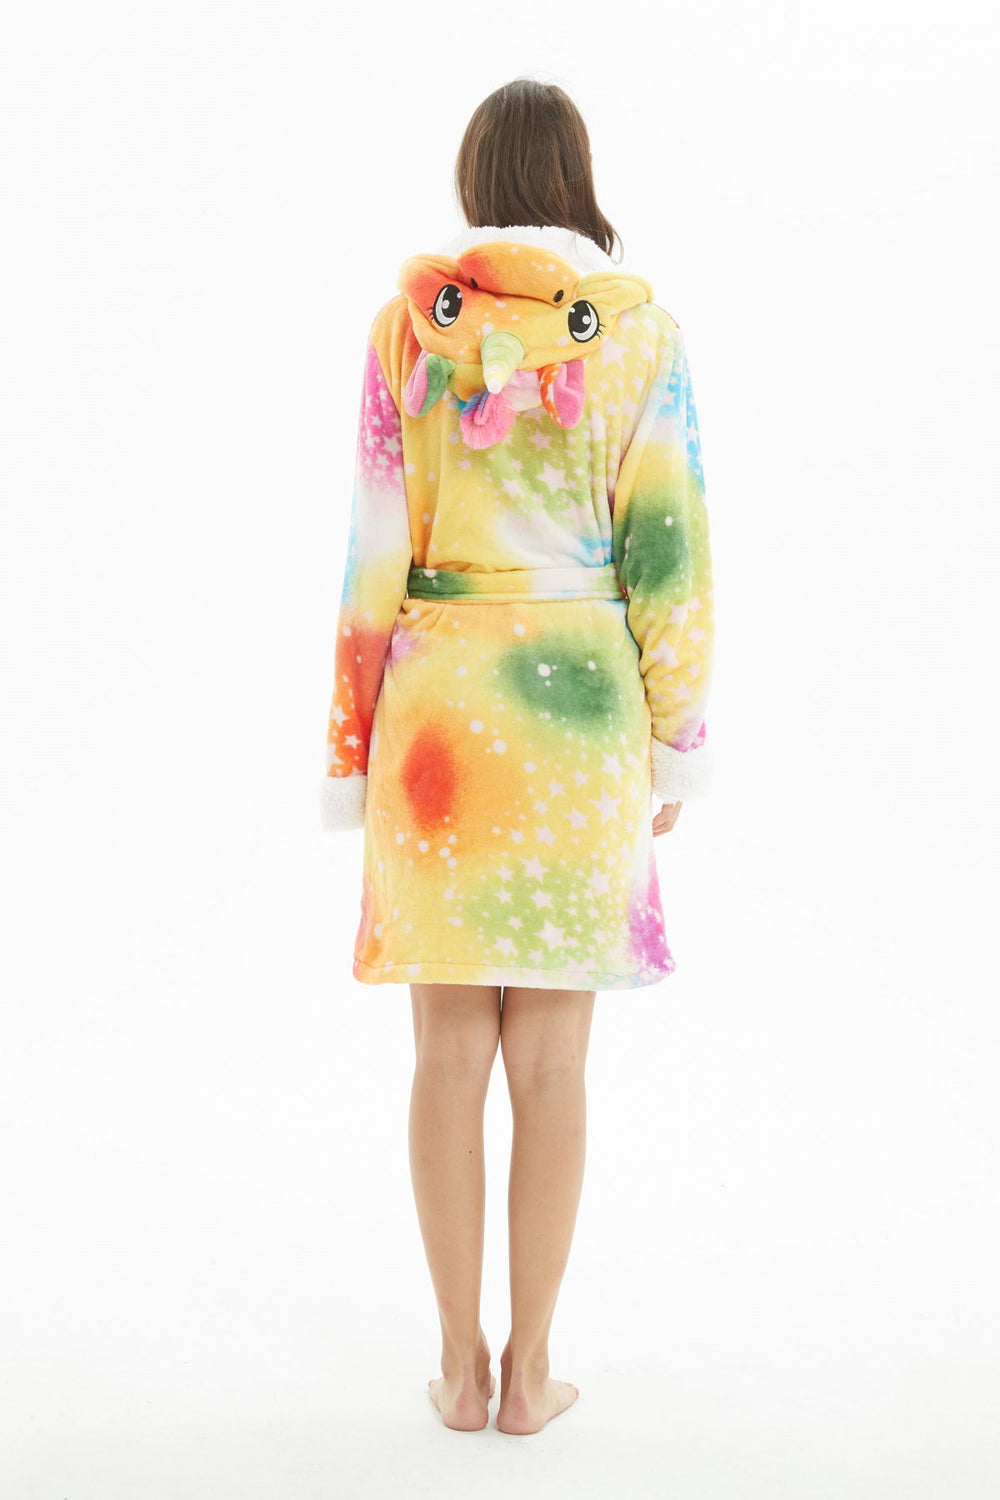 Colored Galaxy Unicorn Hooded Robe - Flannel-Bathrobe-Belife